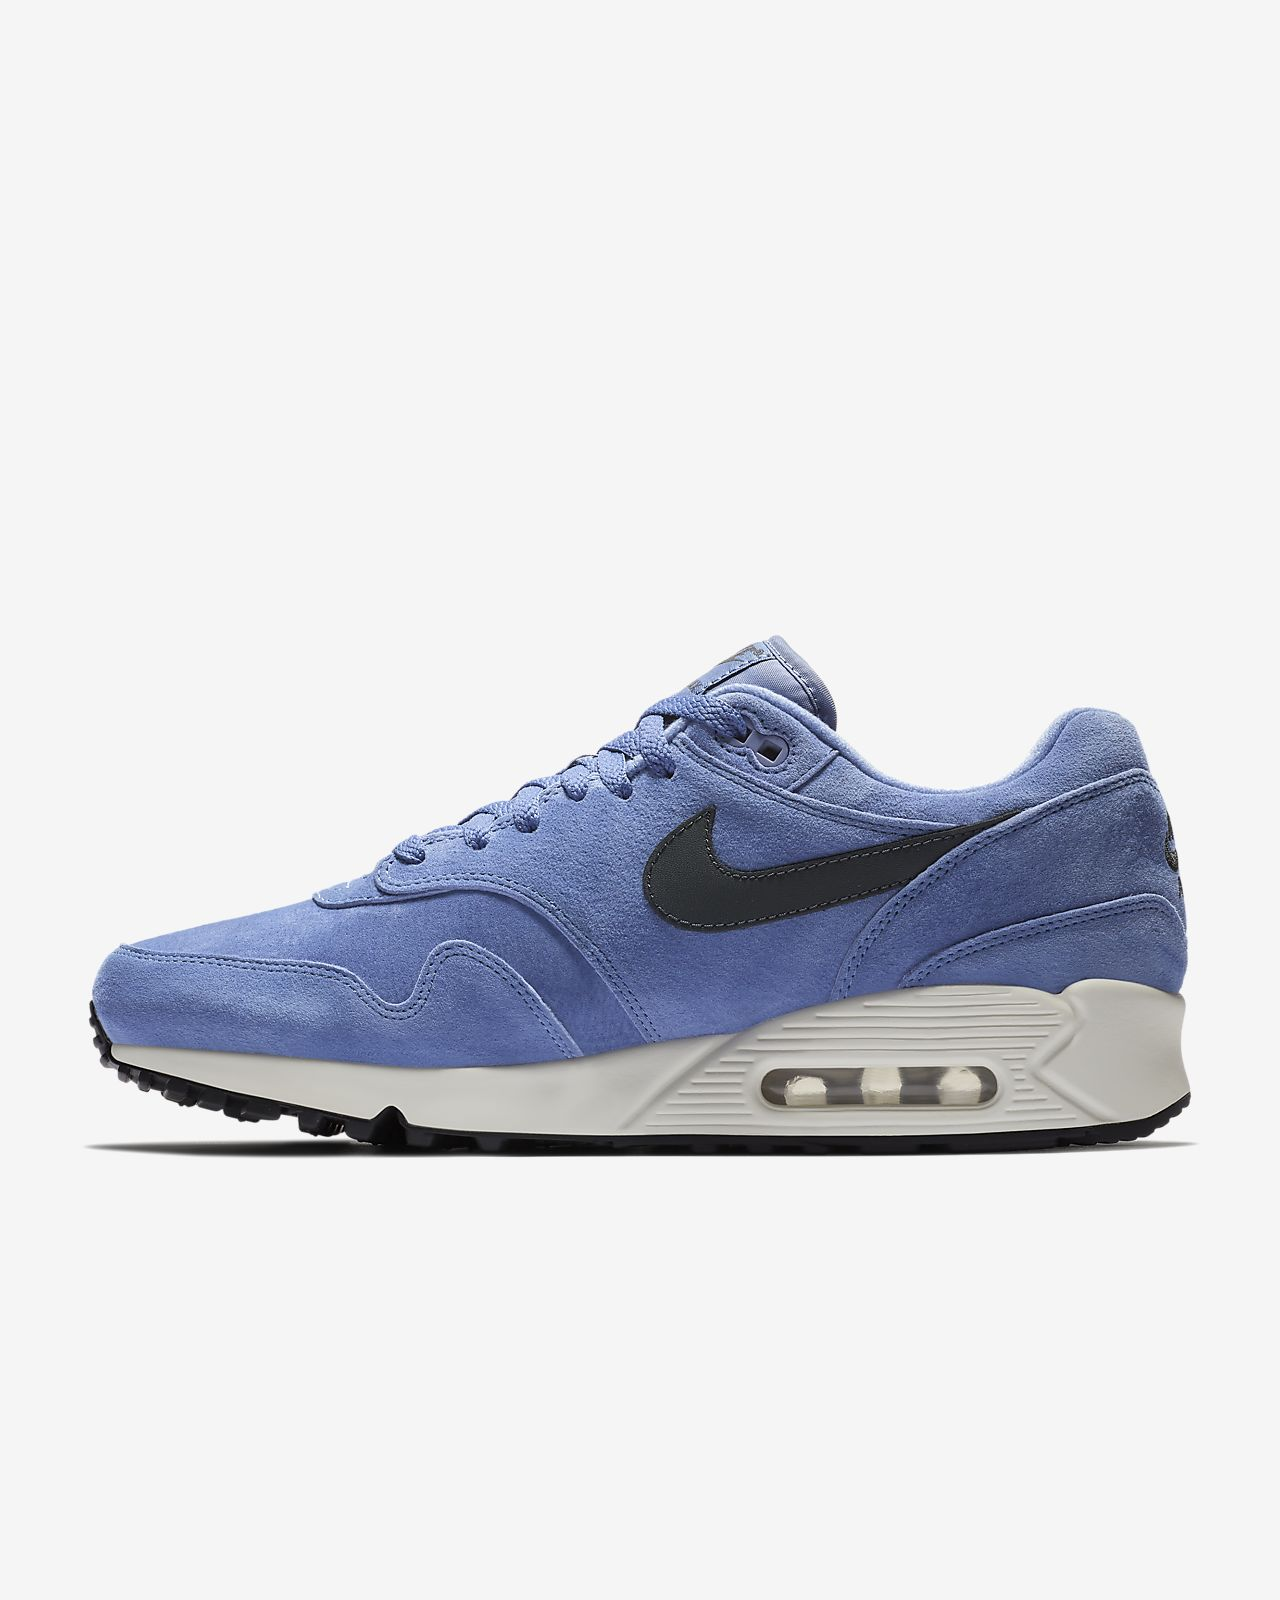 the best attitude e0b71 86d37 ... Chaussure Nike Air Max 90 1 pour Homme